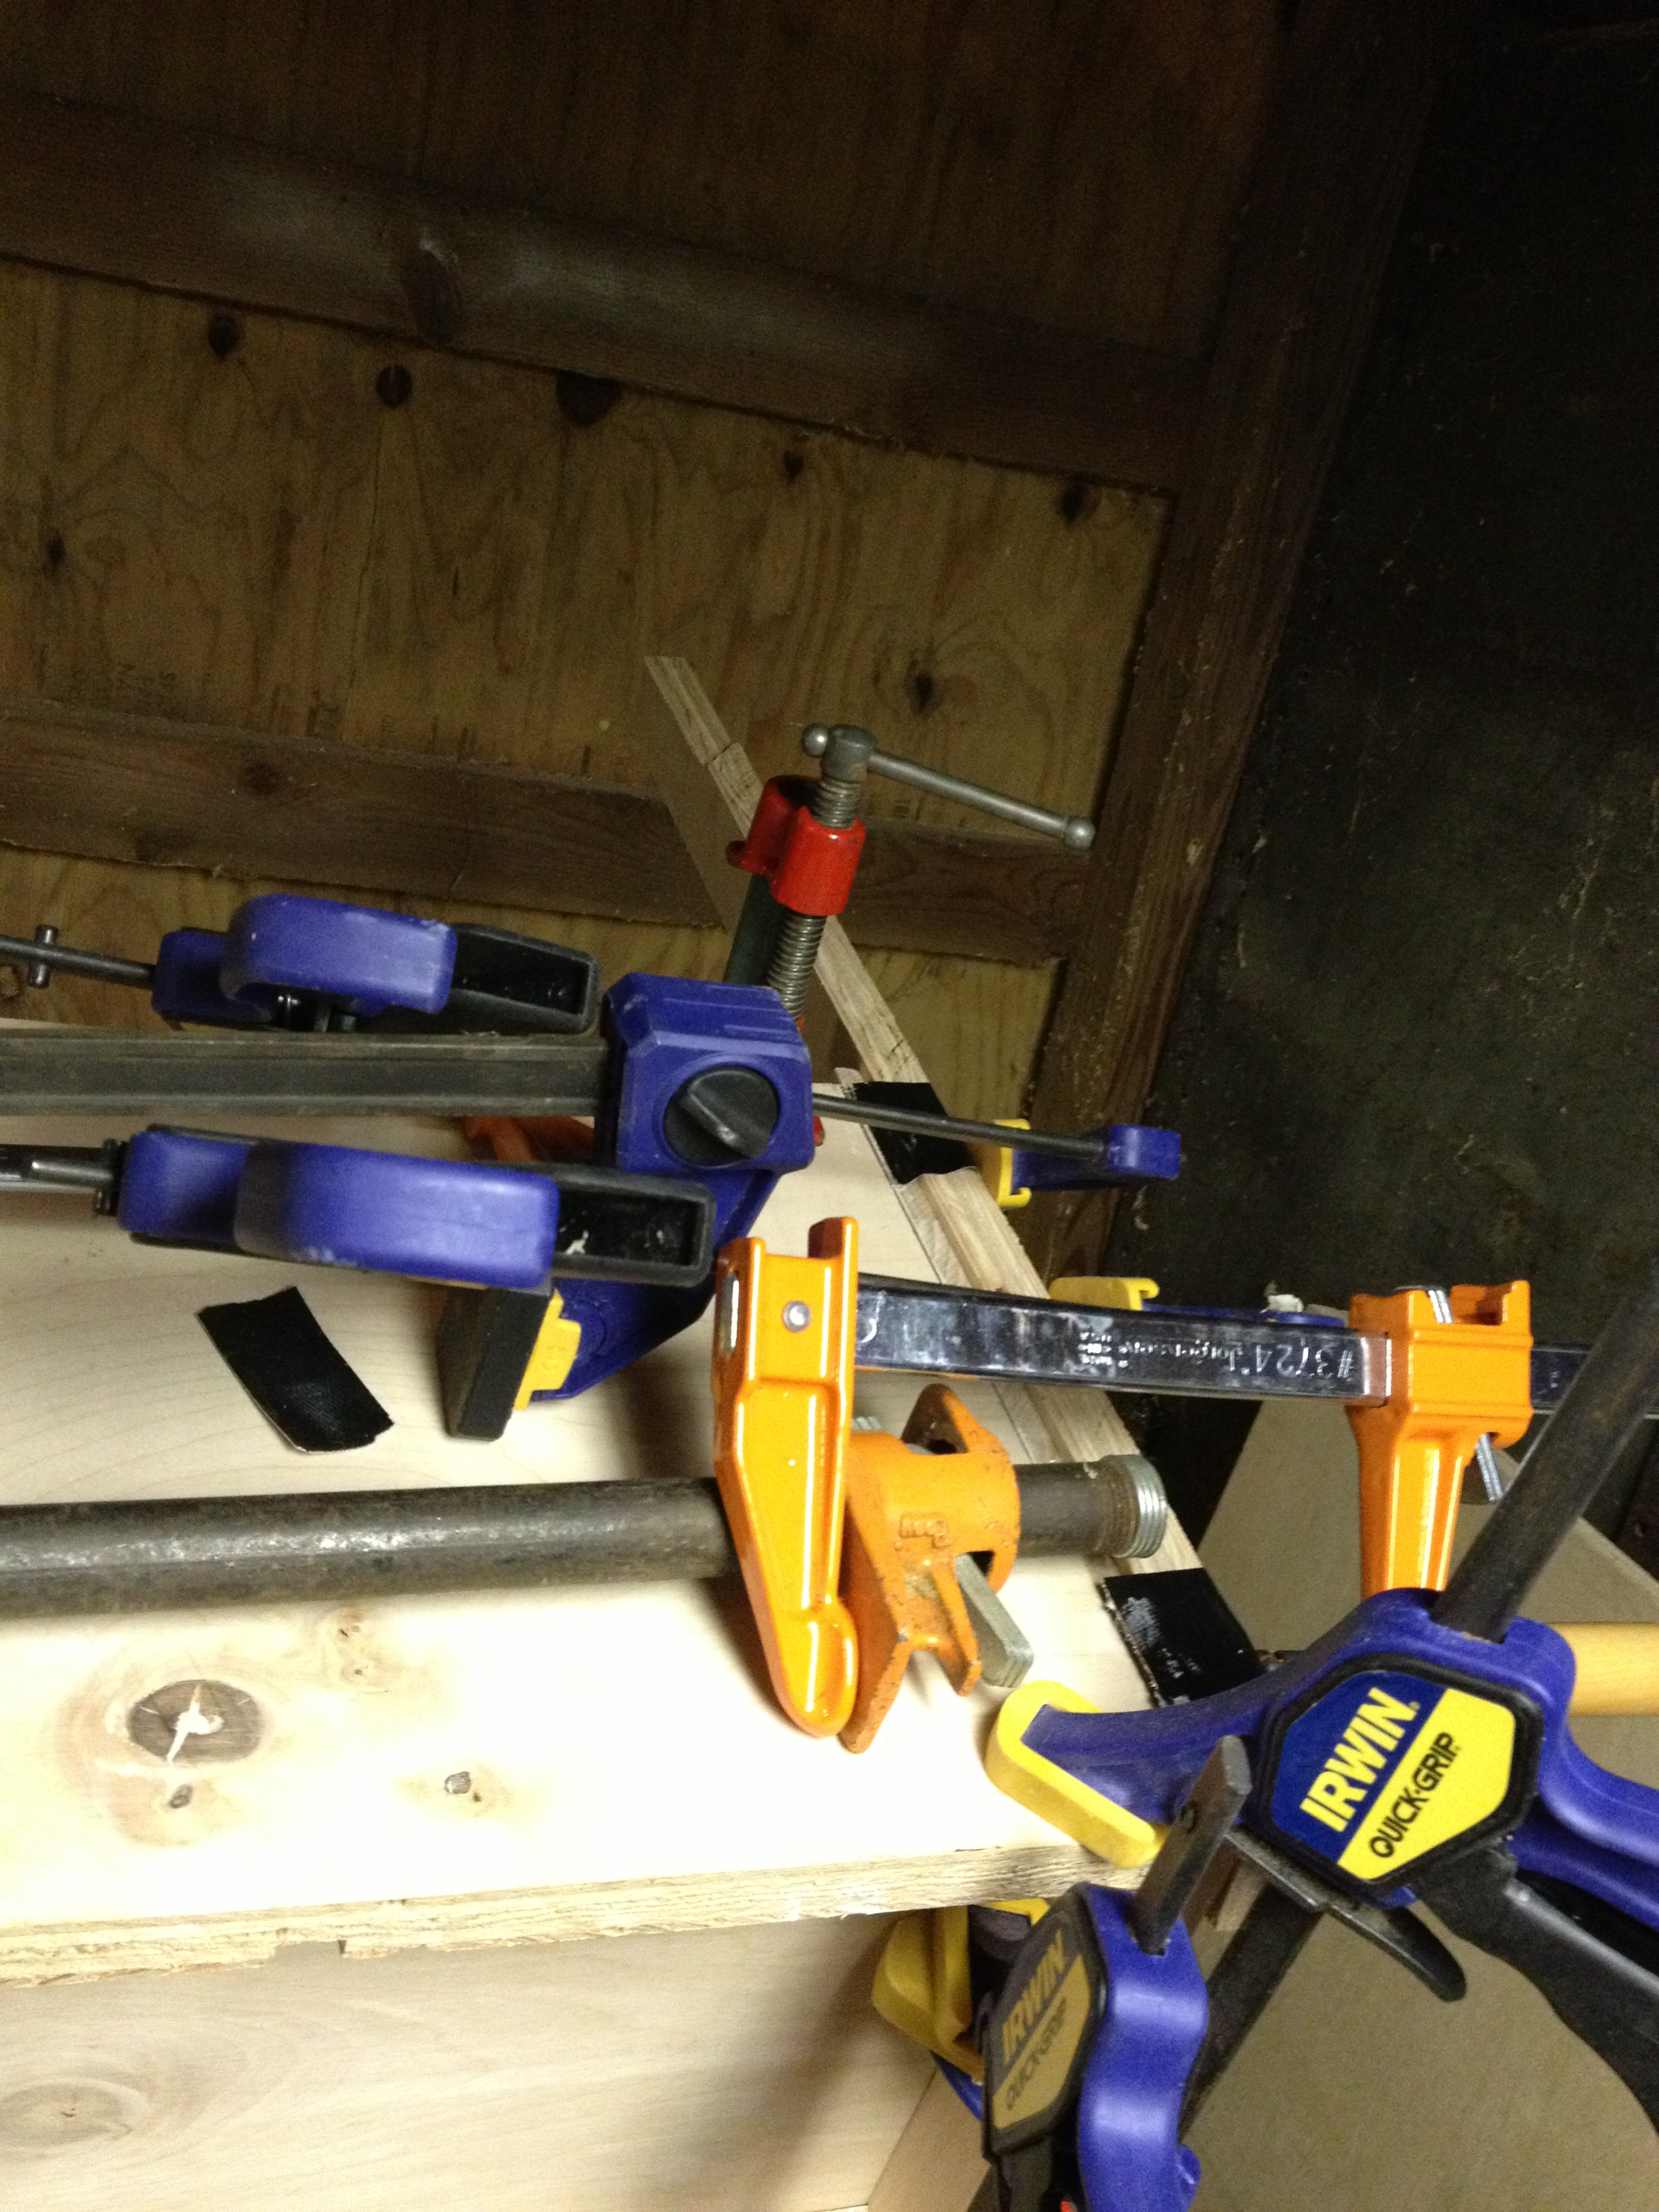 You can never have to many clamps